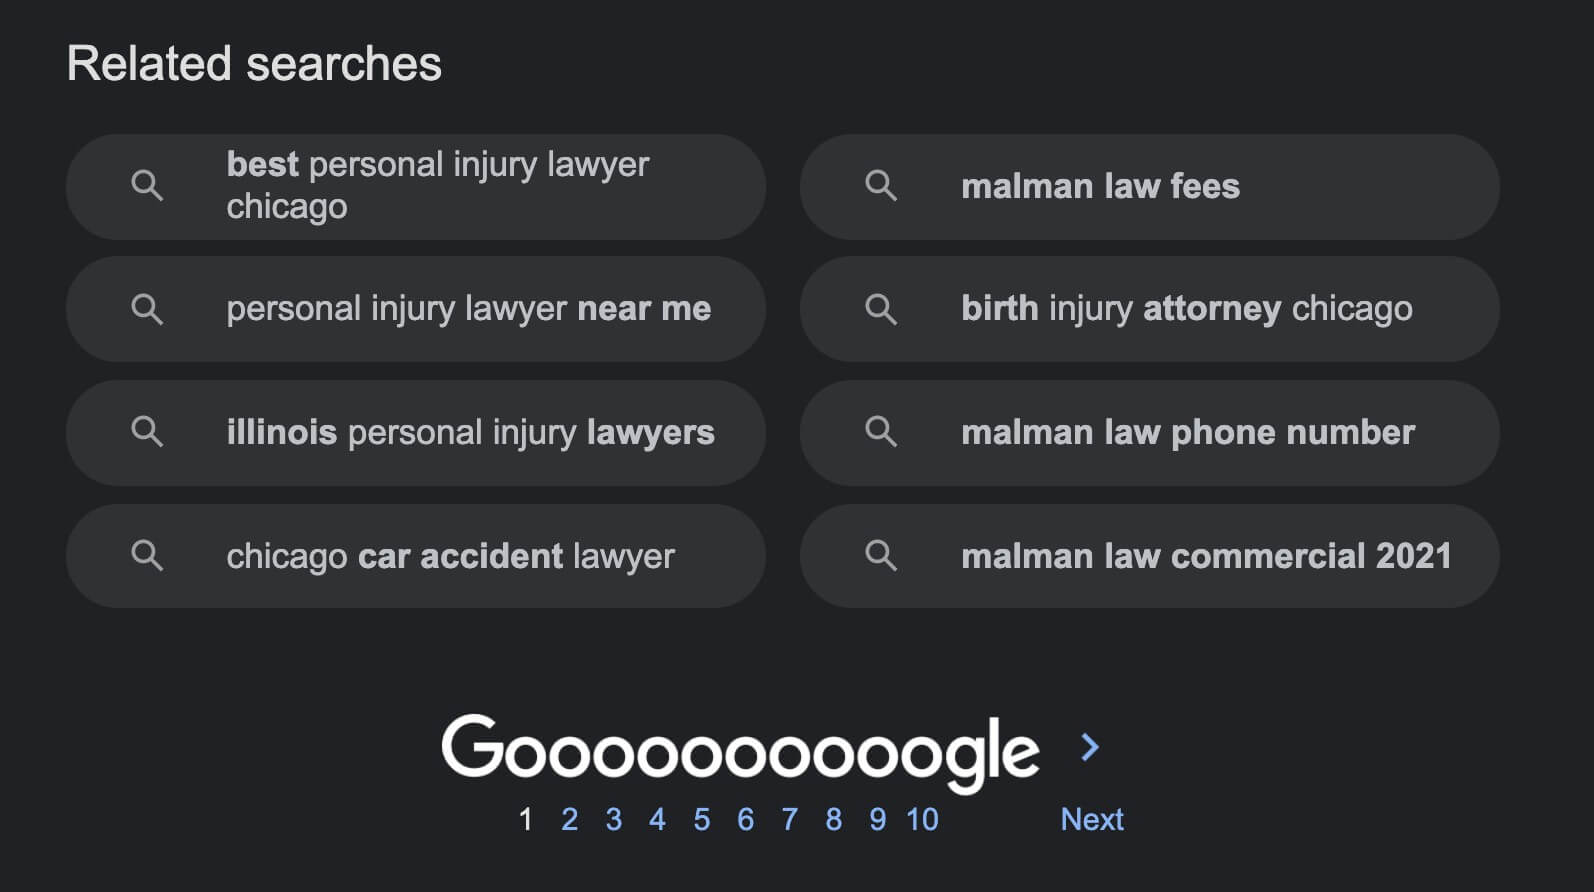 Related Searches section keywords